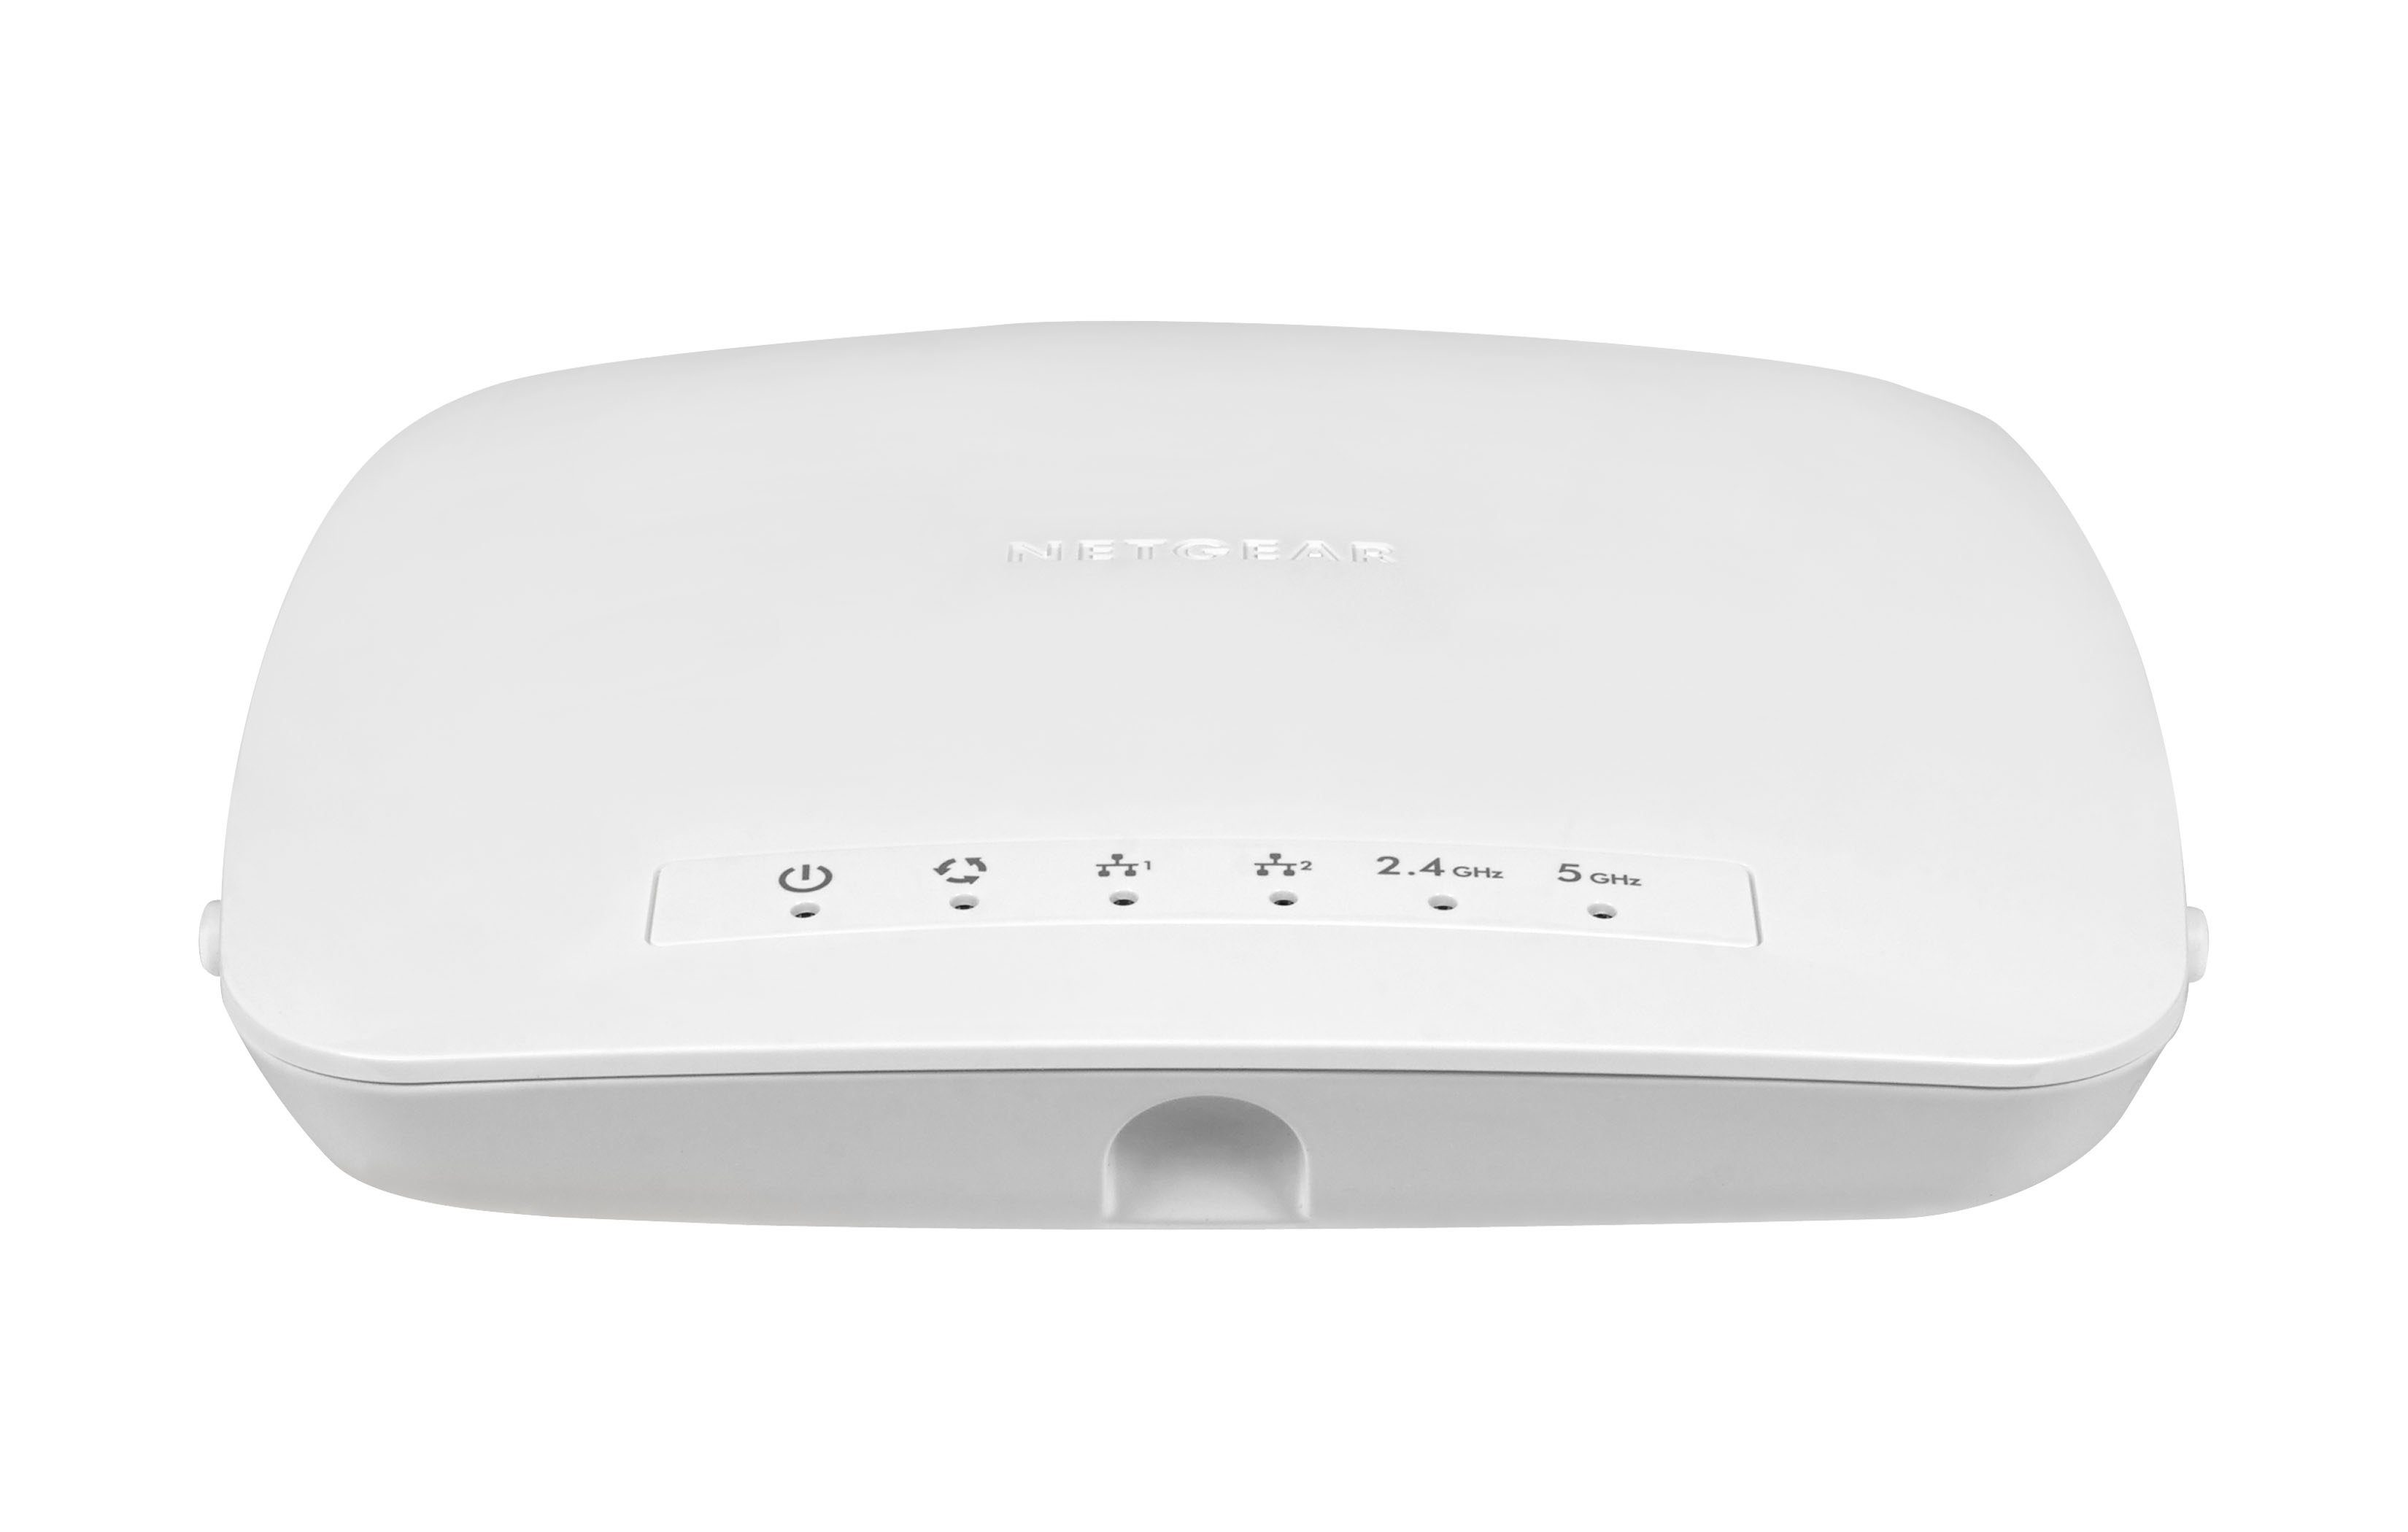 Netgear Access Point Hardware »4X4 DUAL BAND PR.WIRELESS-AC AP«